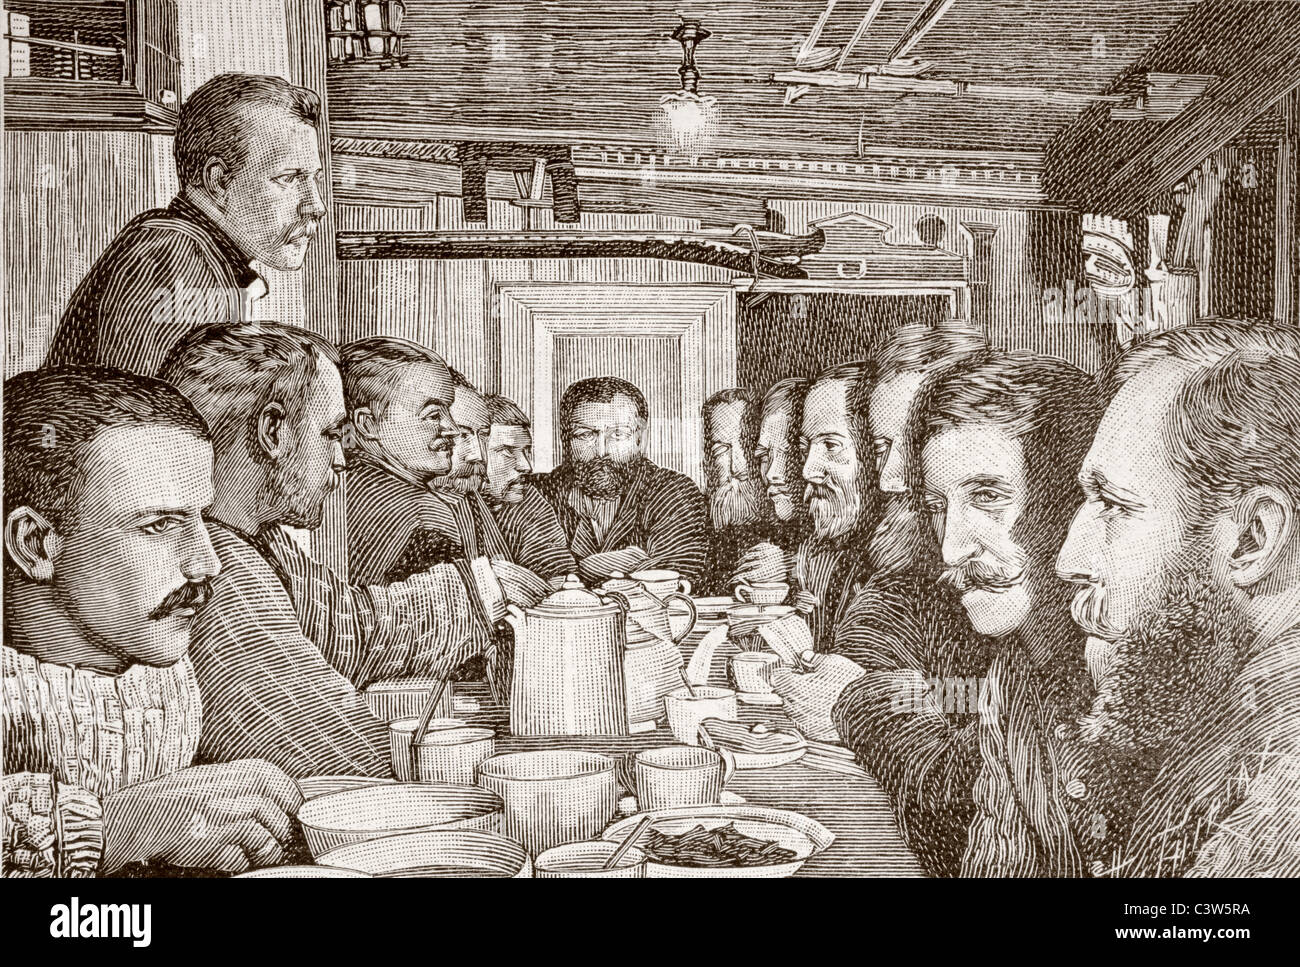 Nansen, standing left, speaks to the twelve men of his team in the galley of the Fram during the Fram polar expedition. - Stock Image